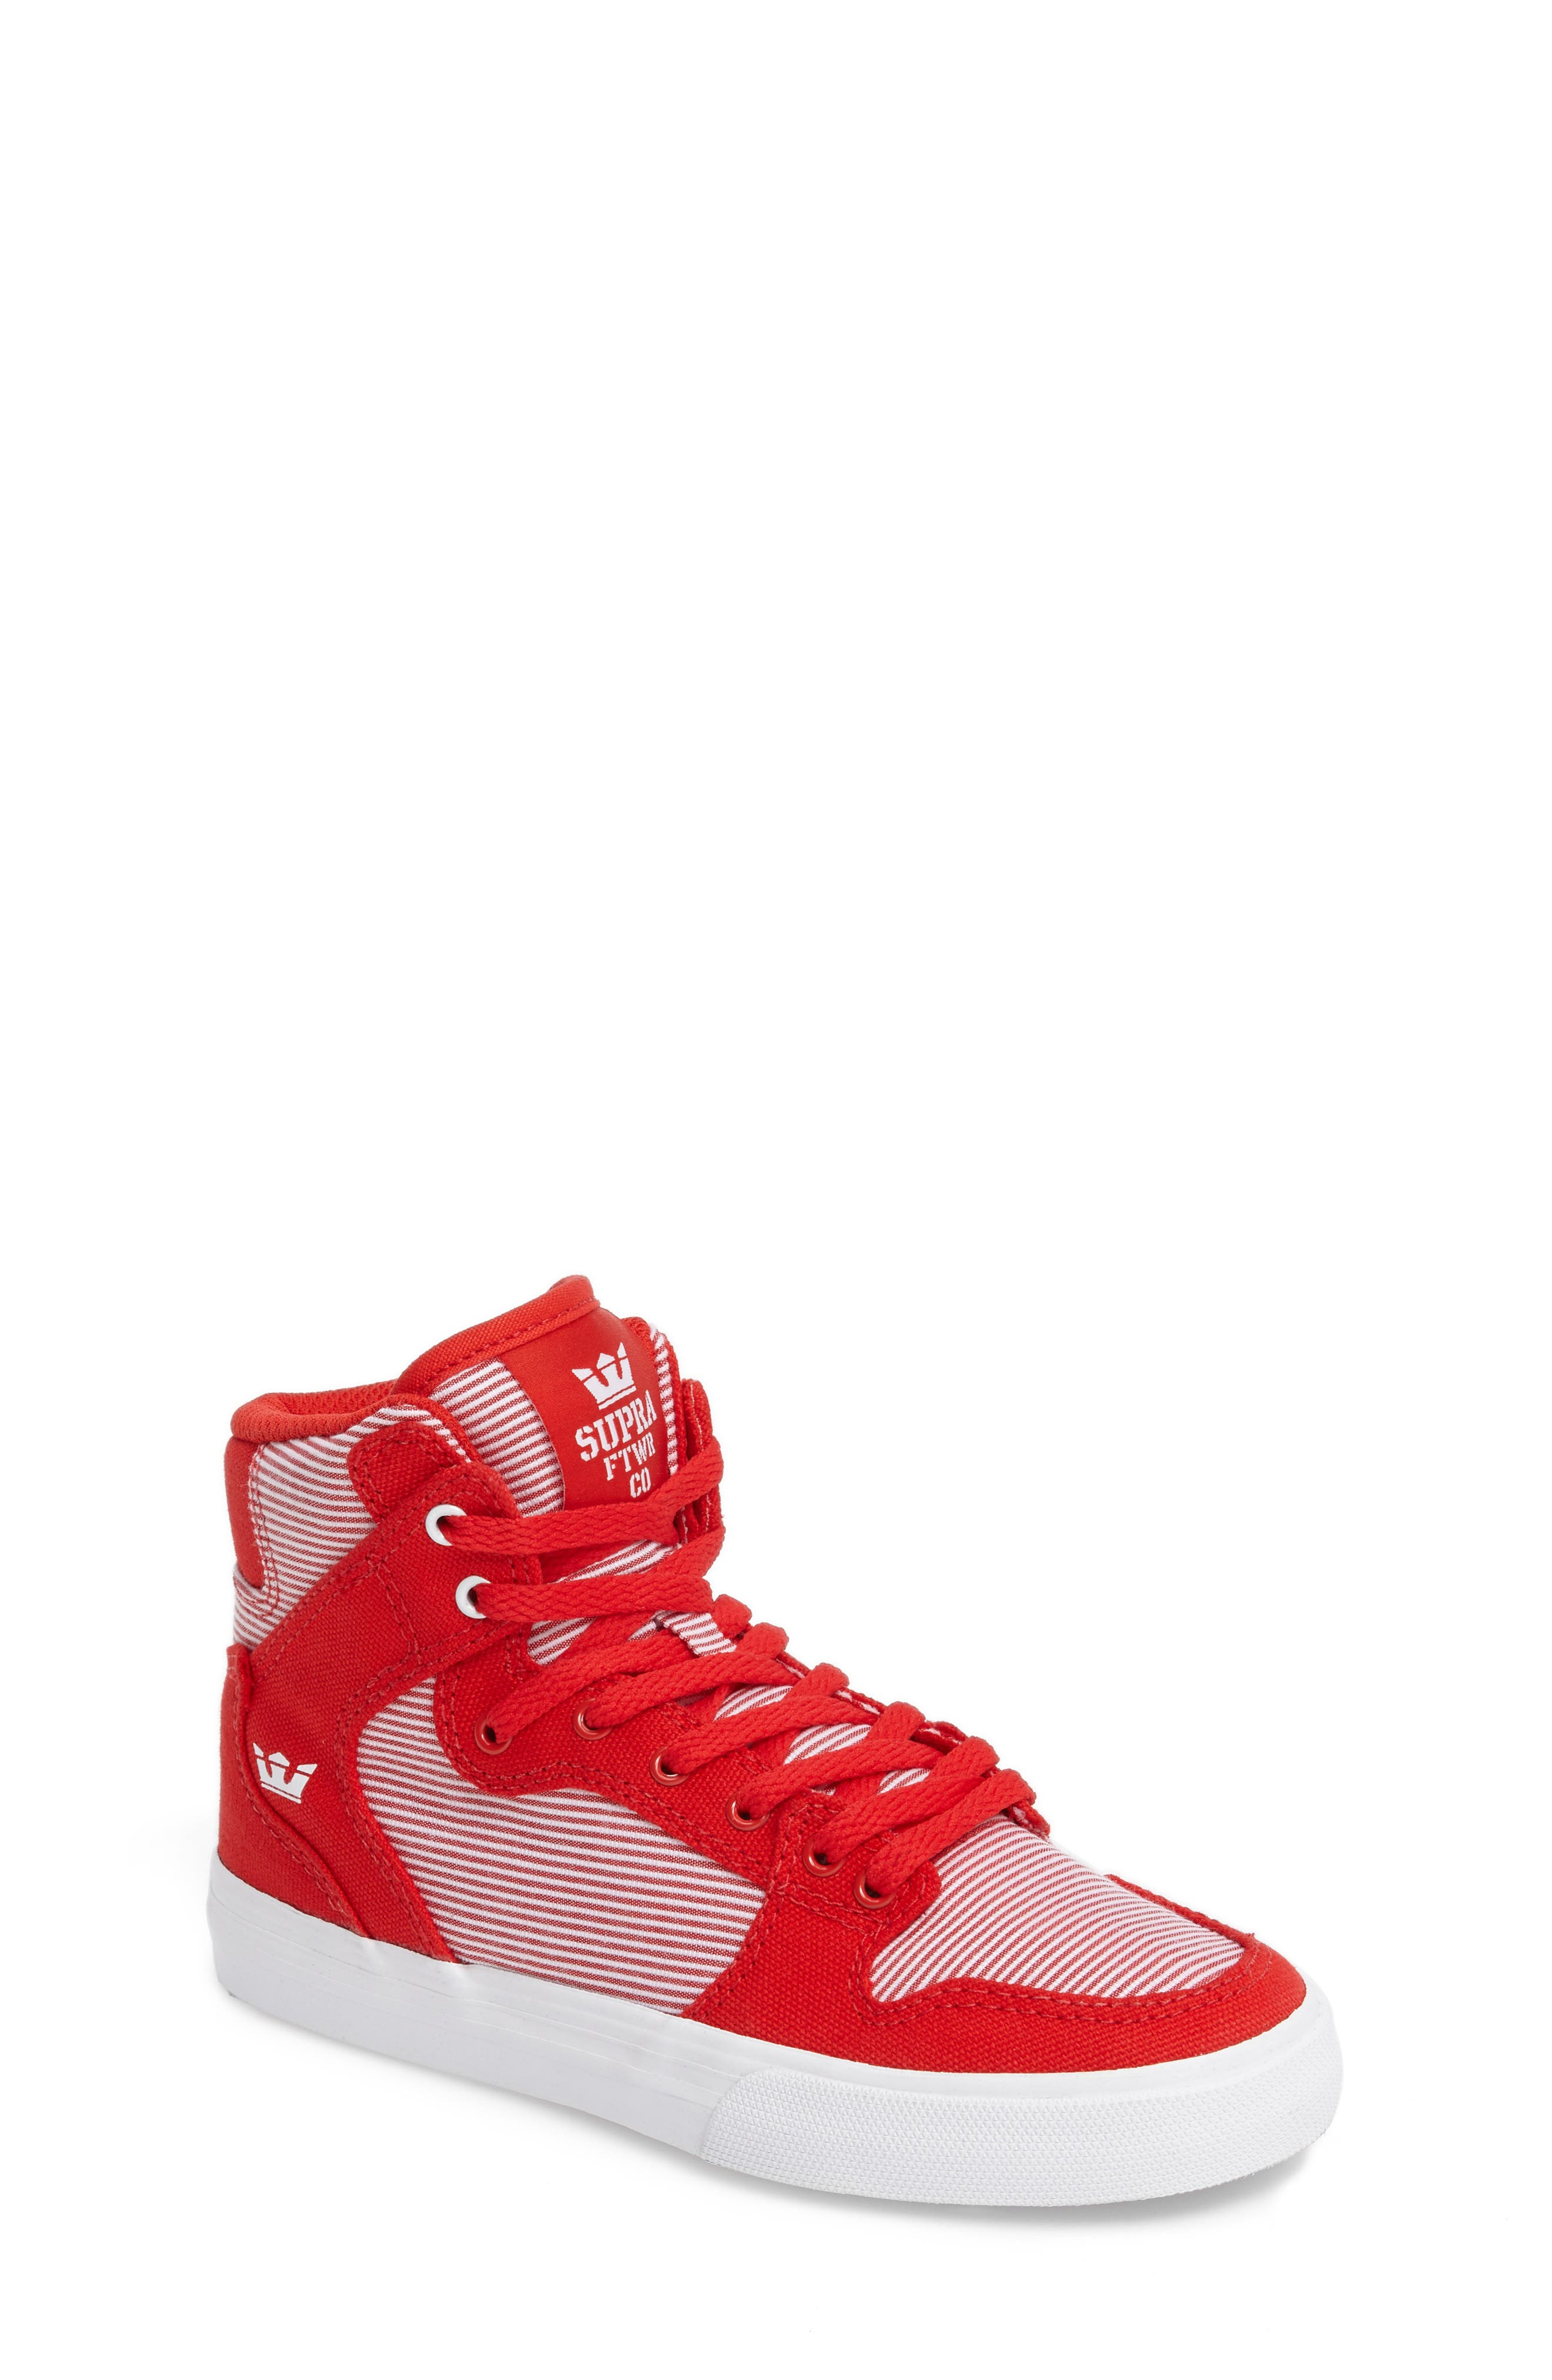 Vaider High Top Sneaker,                         Main,                         color, Red/ White